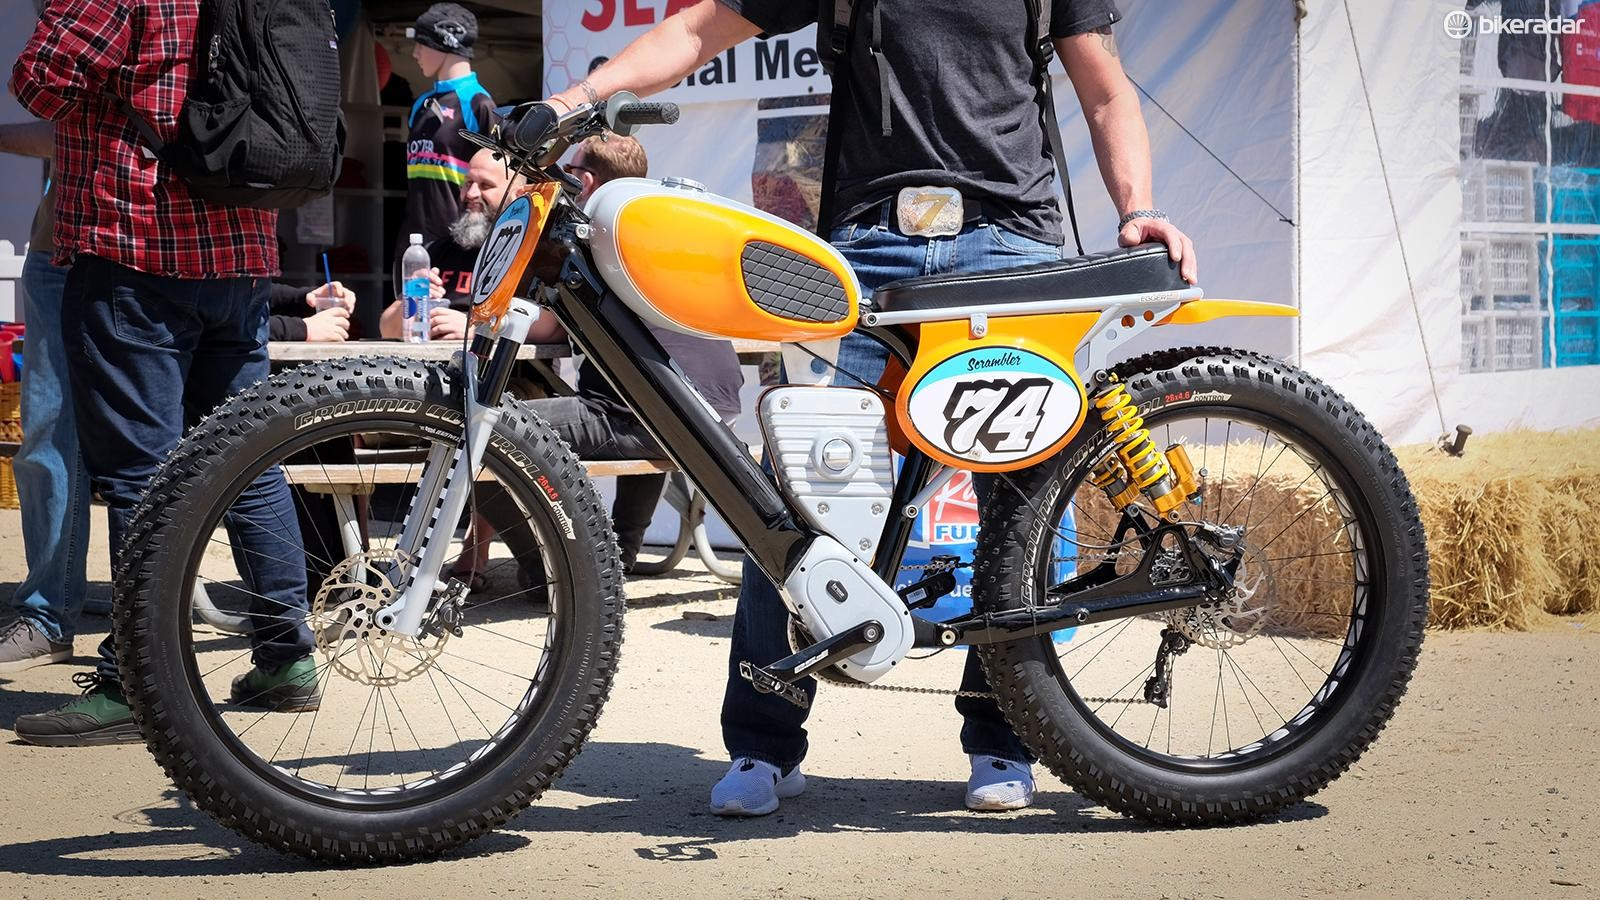 E-bikes were everywhere at Sea Otter, but this one stood out from the crowd